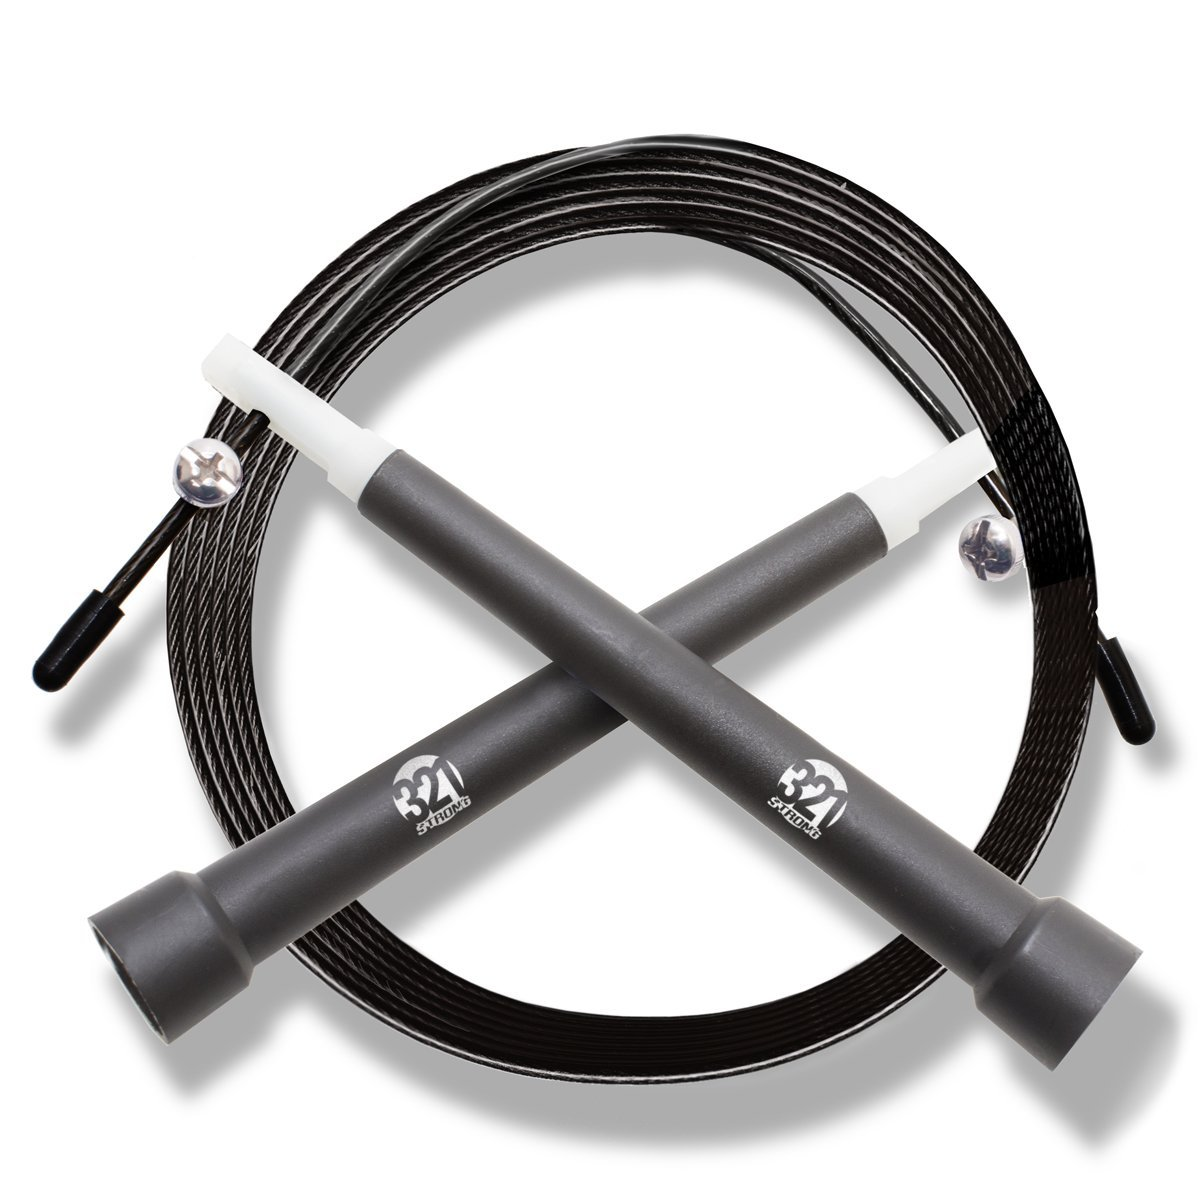 Best Crossfit Jump Rope For Double Unders Review